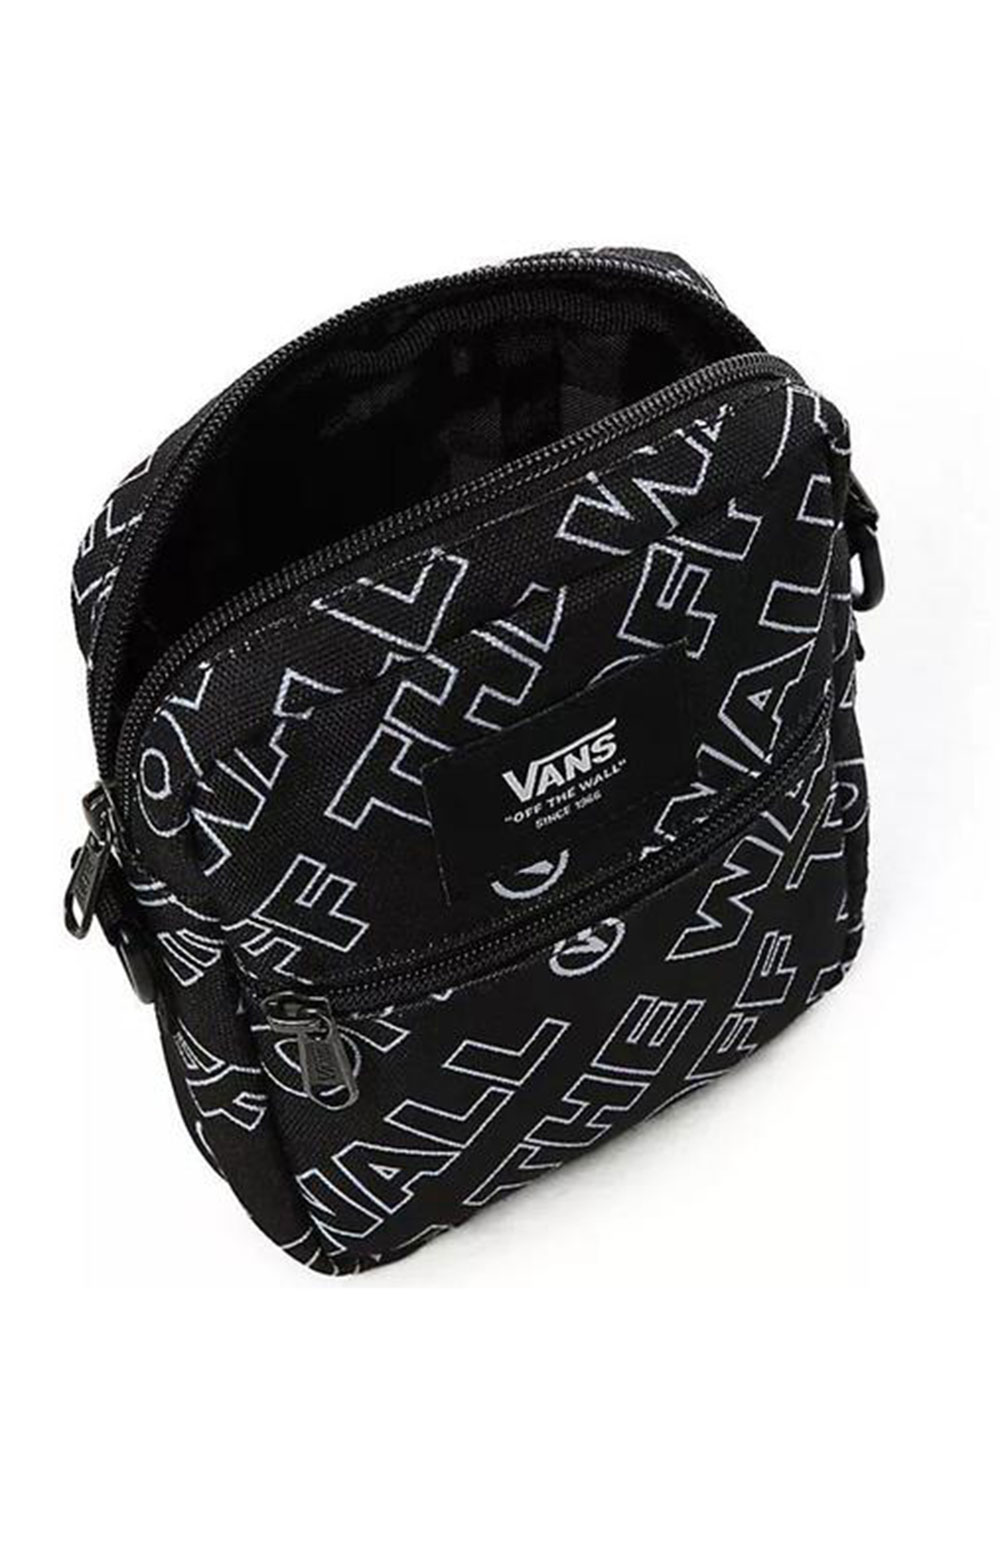 Bail Shoulder Bag - Black Dimension  2